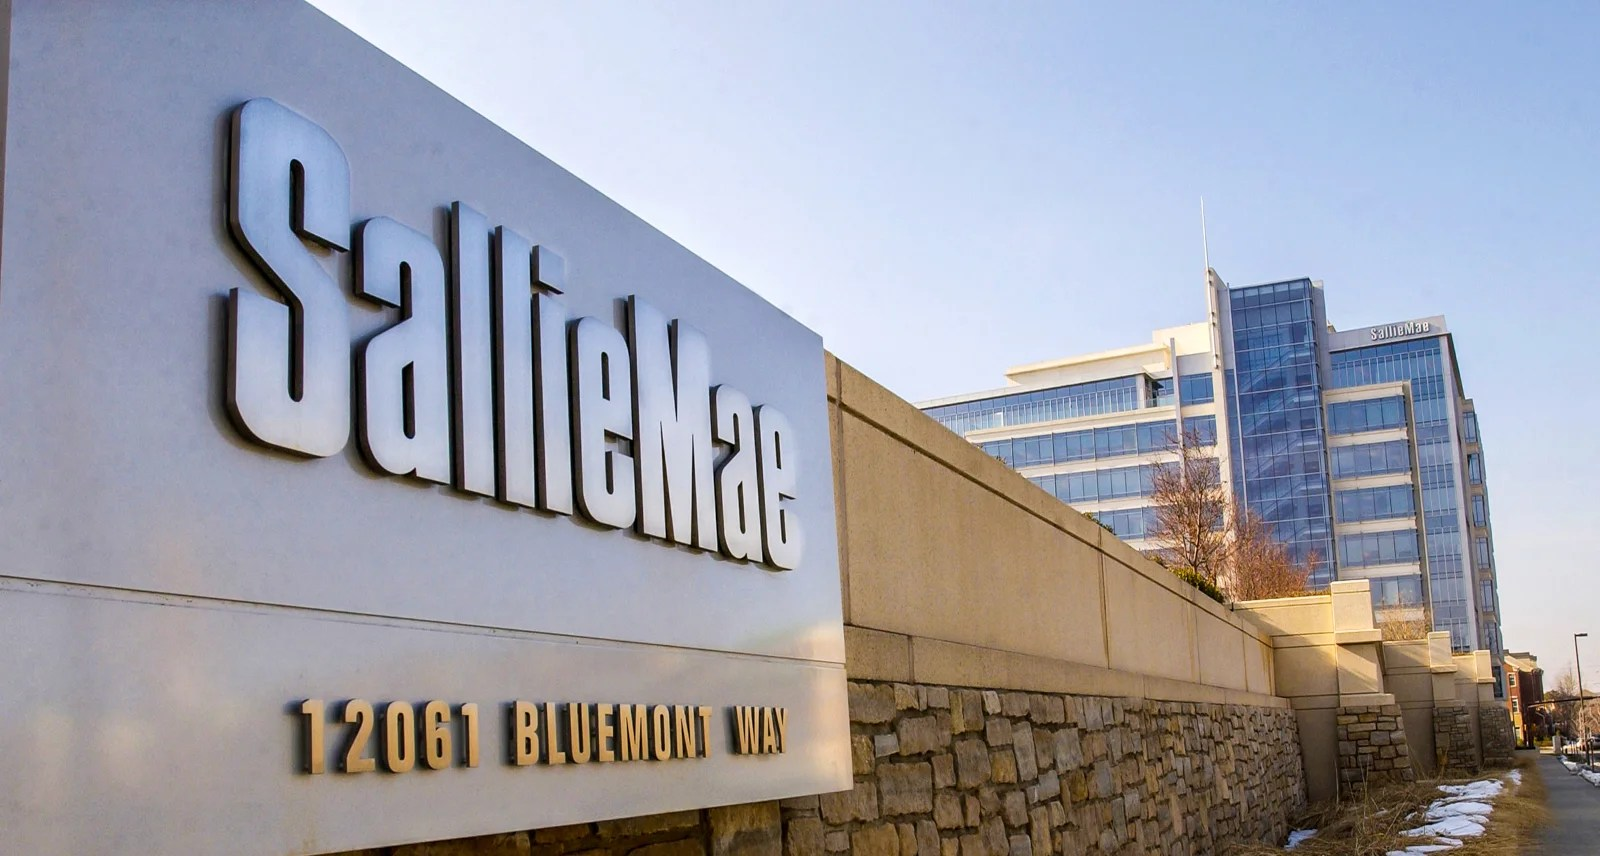 Sallie Mae Is Launching 3 New Credit Cards, But They're Not the Best Options for Cash Back